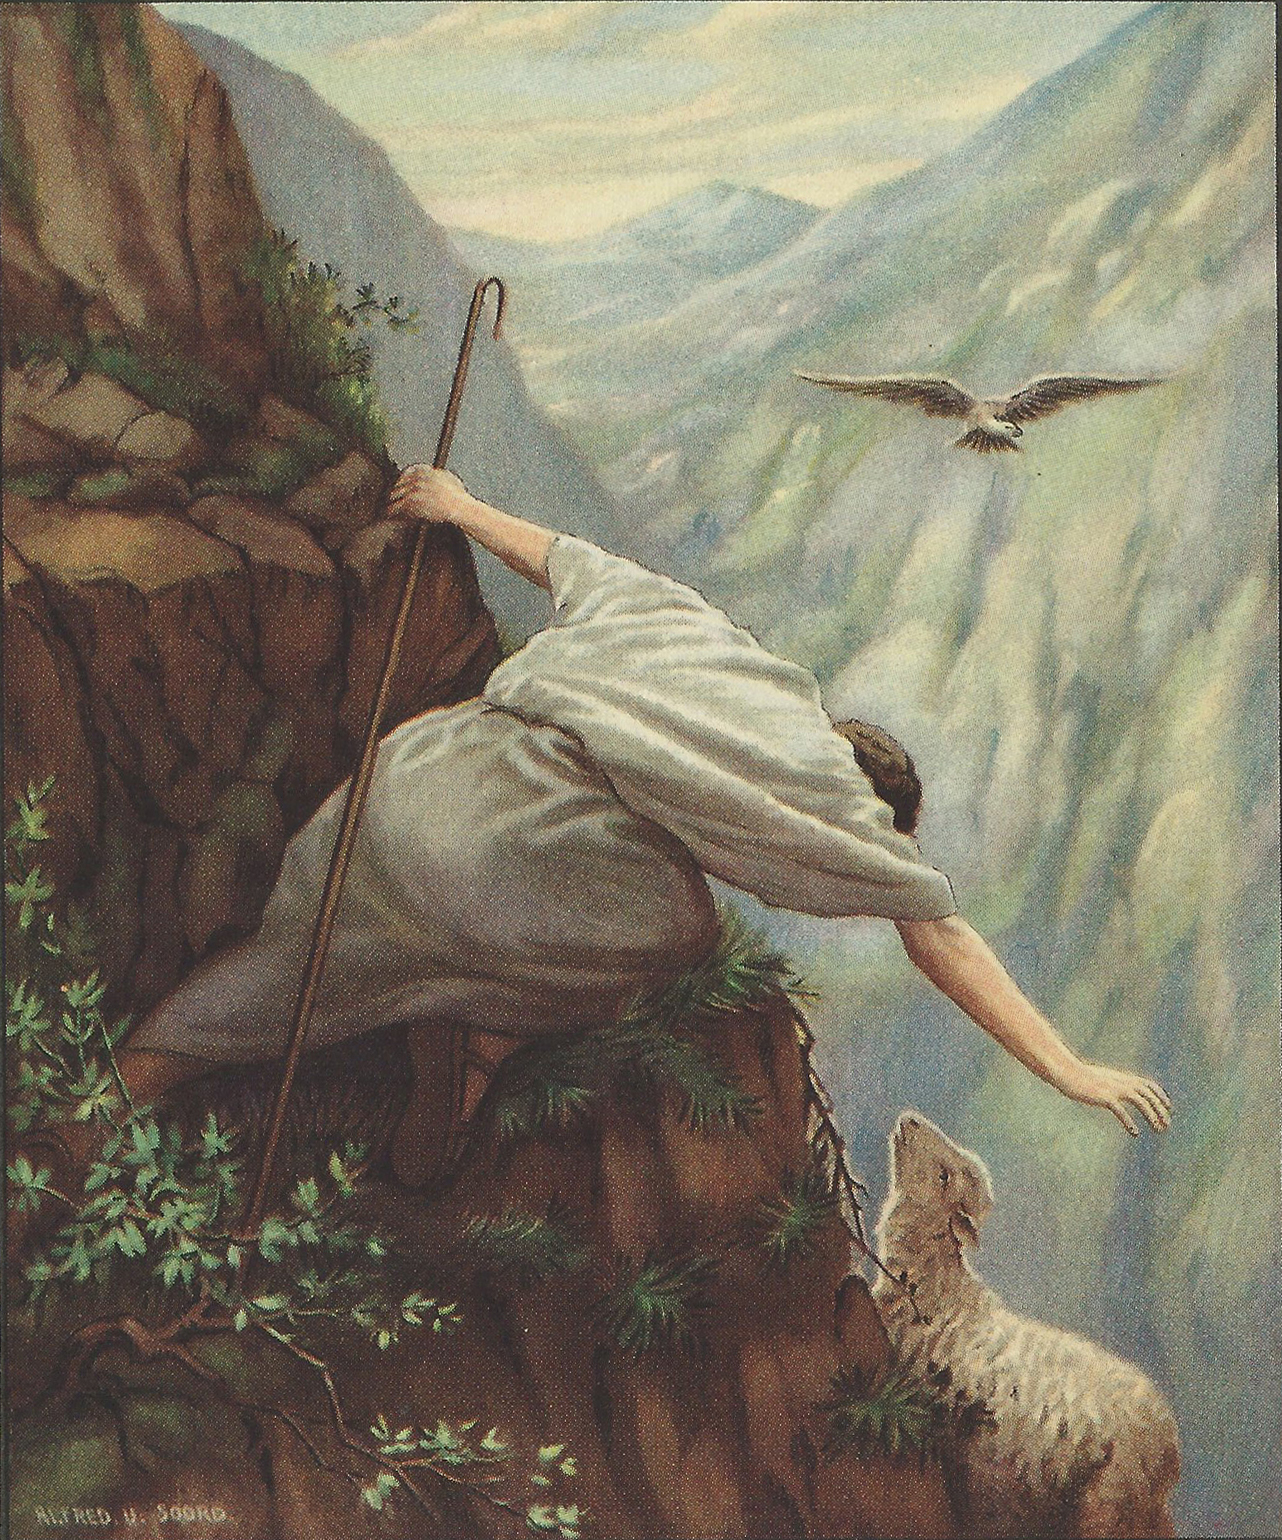 Image credit: The Lost Sheep from Lillie A. Faris, Standard Bible Story Readers, Book 1, page 110. This is a public domain image.